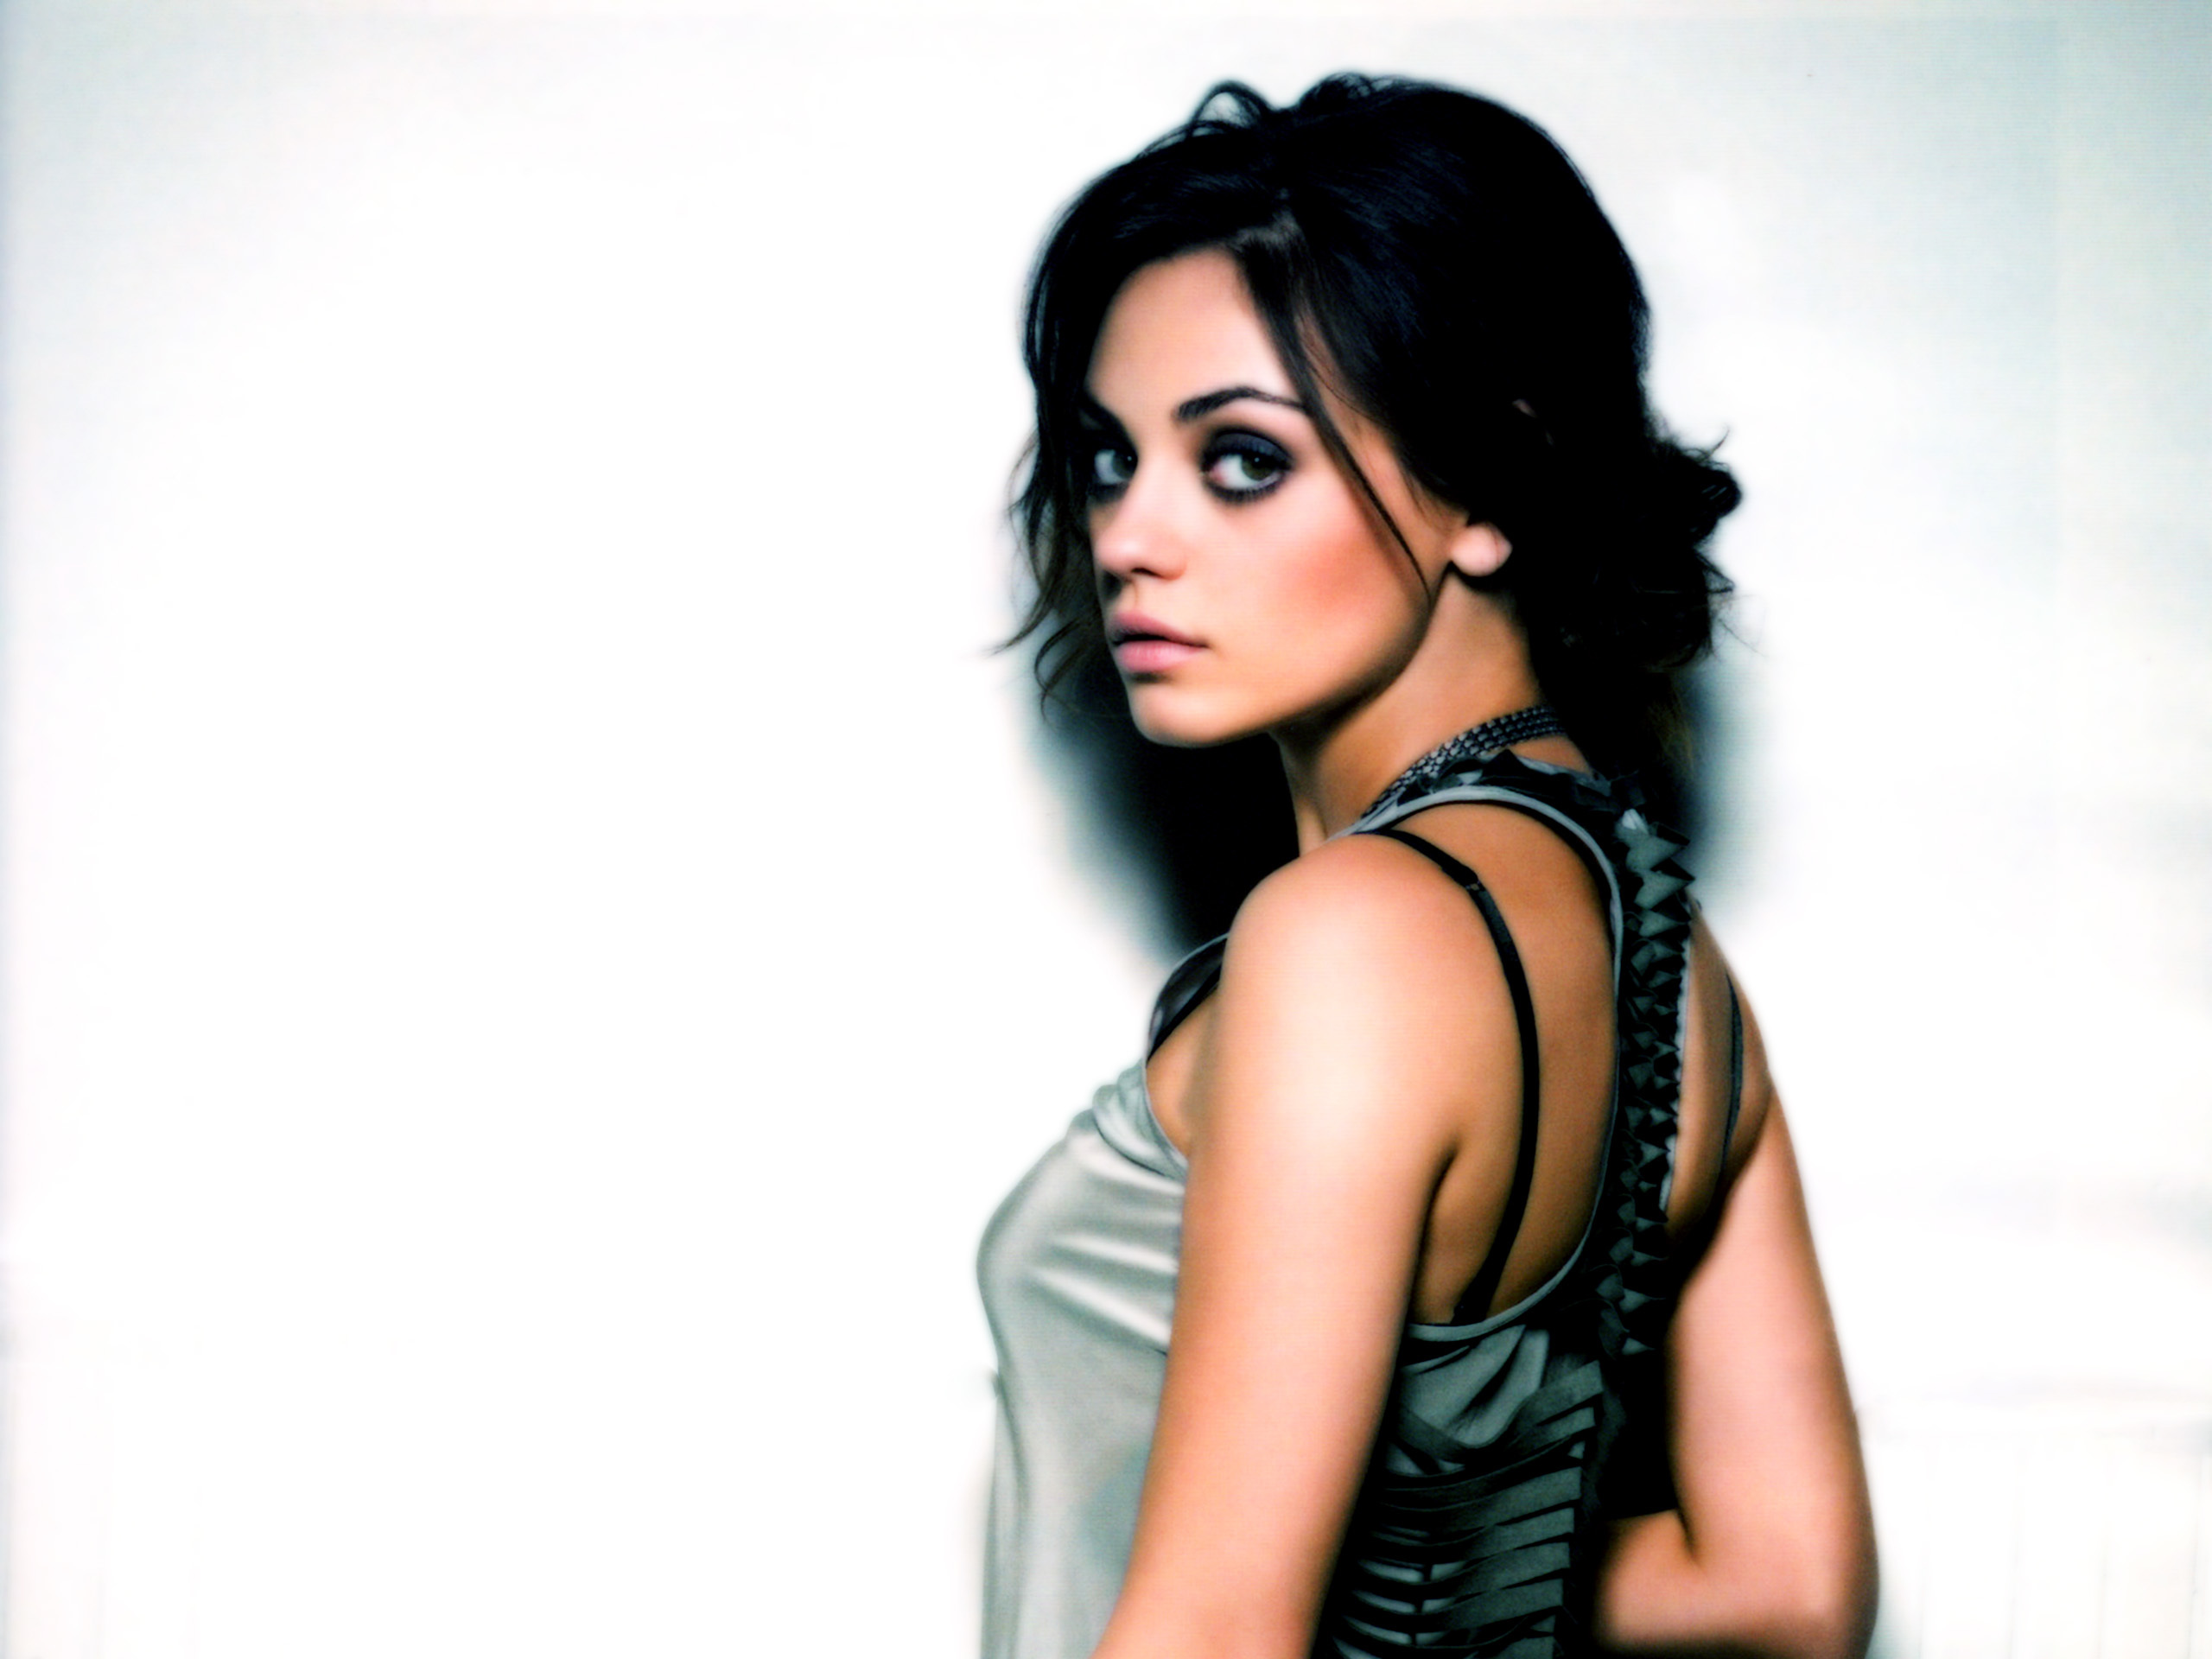 woman mila kunis Actress HD Wallpaper